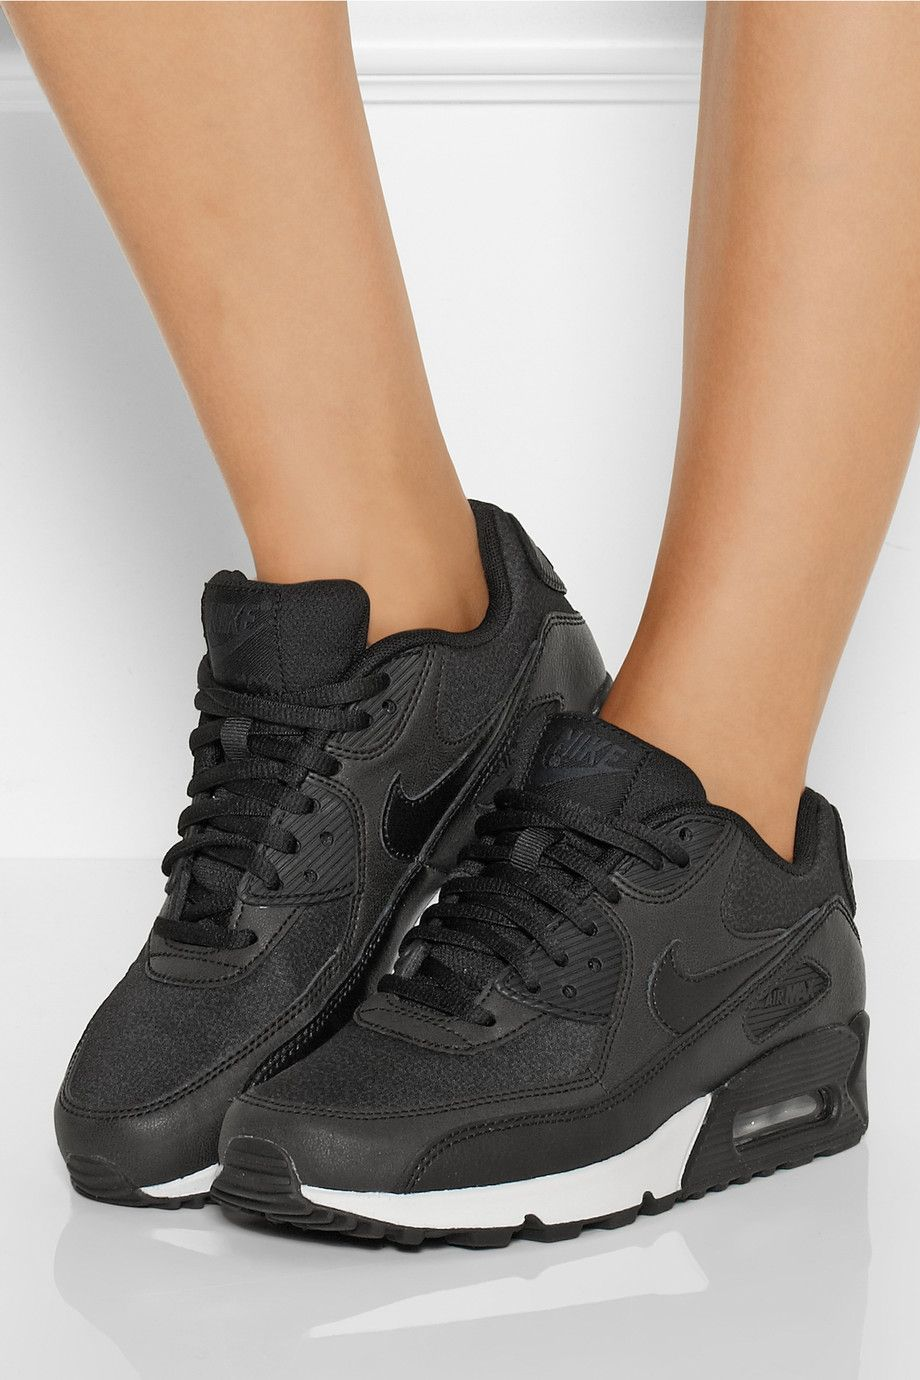 women's black patent leather nike air max 90